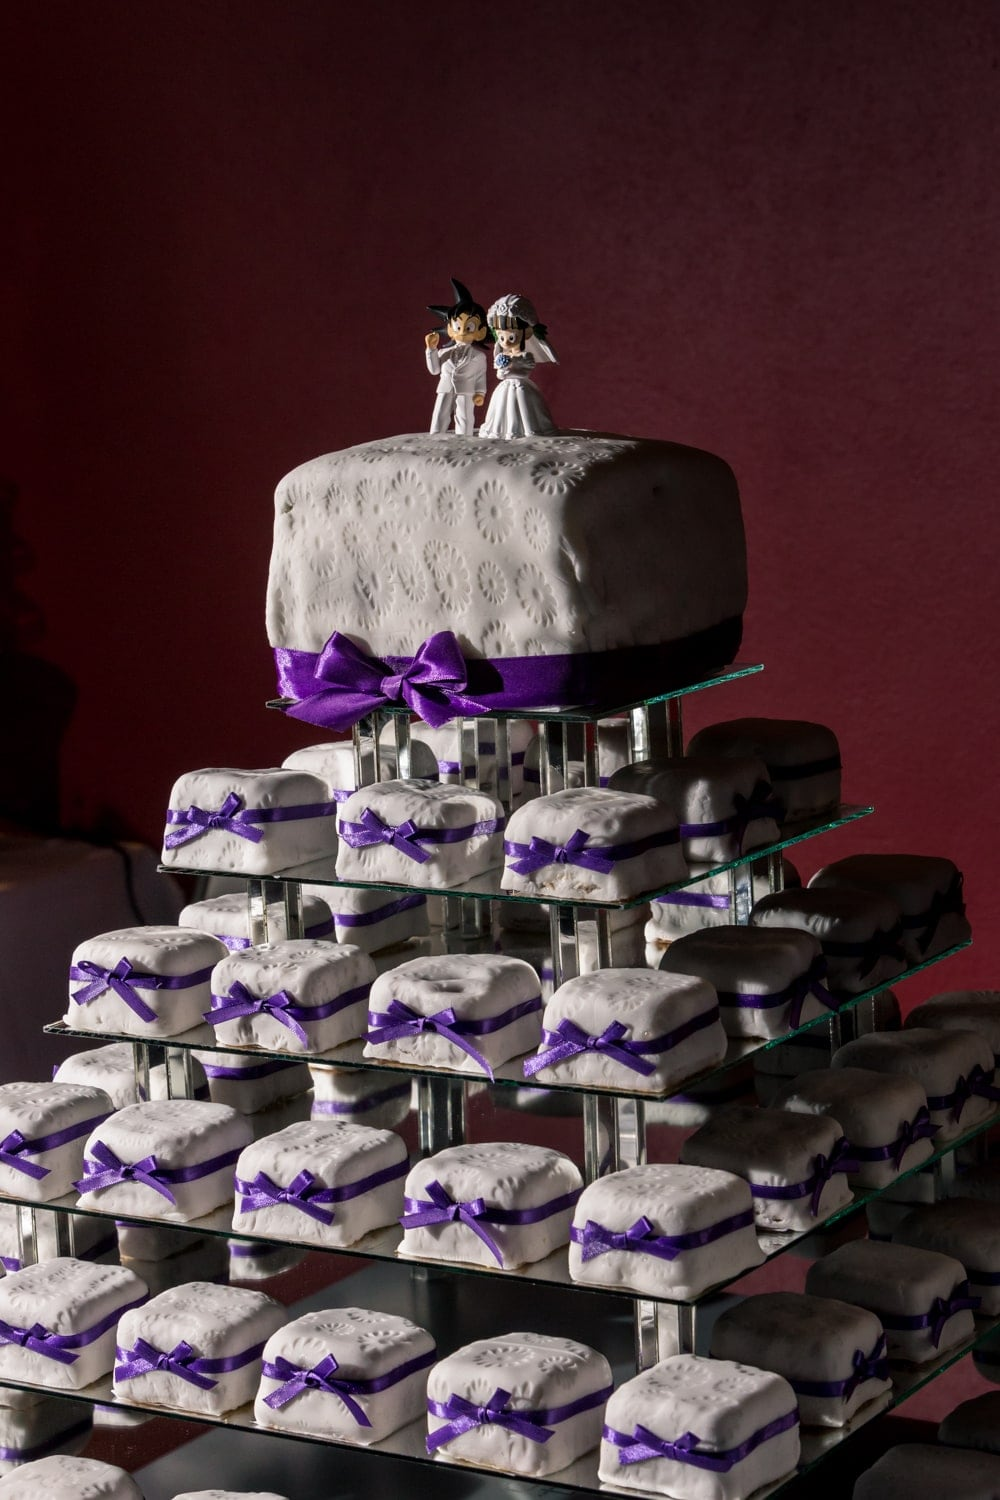 Unique white and purple wedding cake awaits hungry guests.